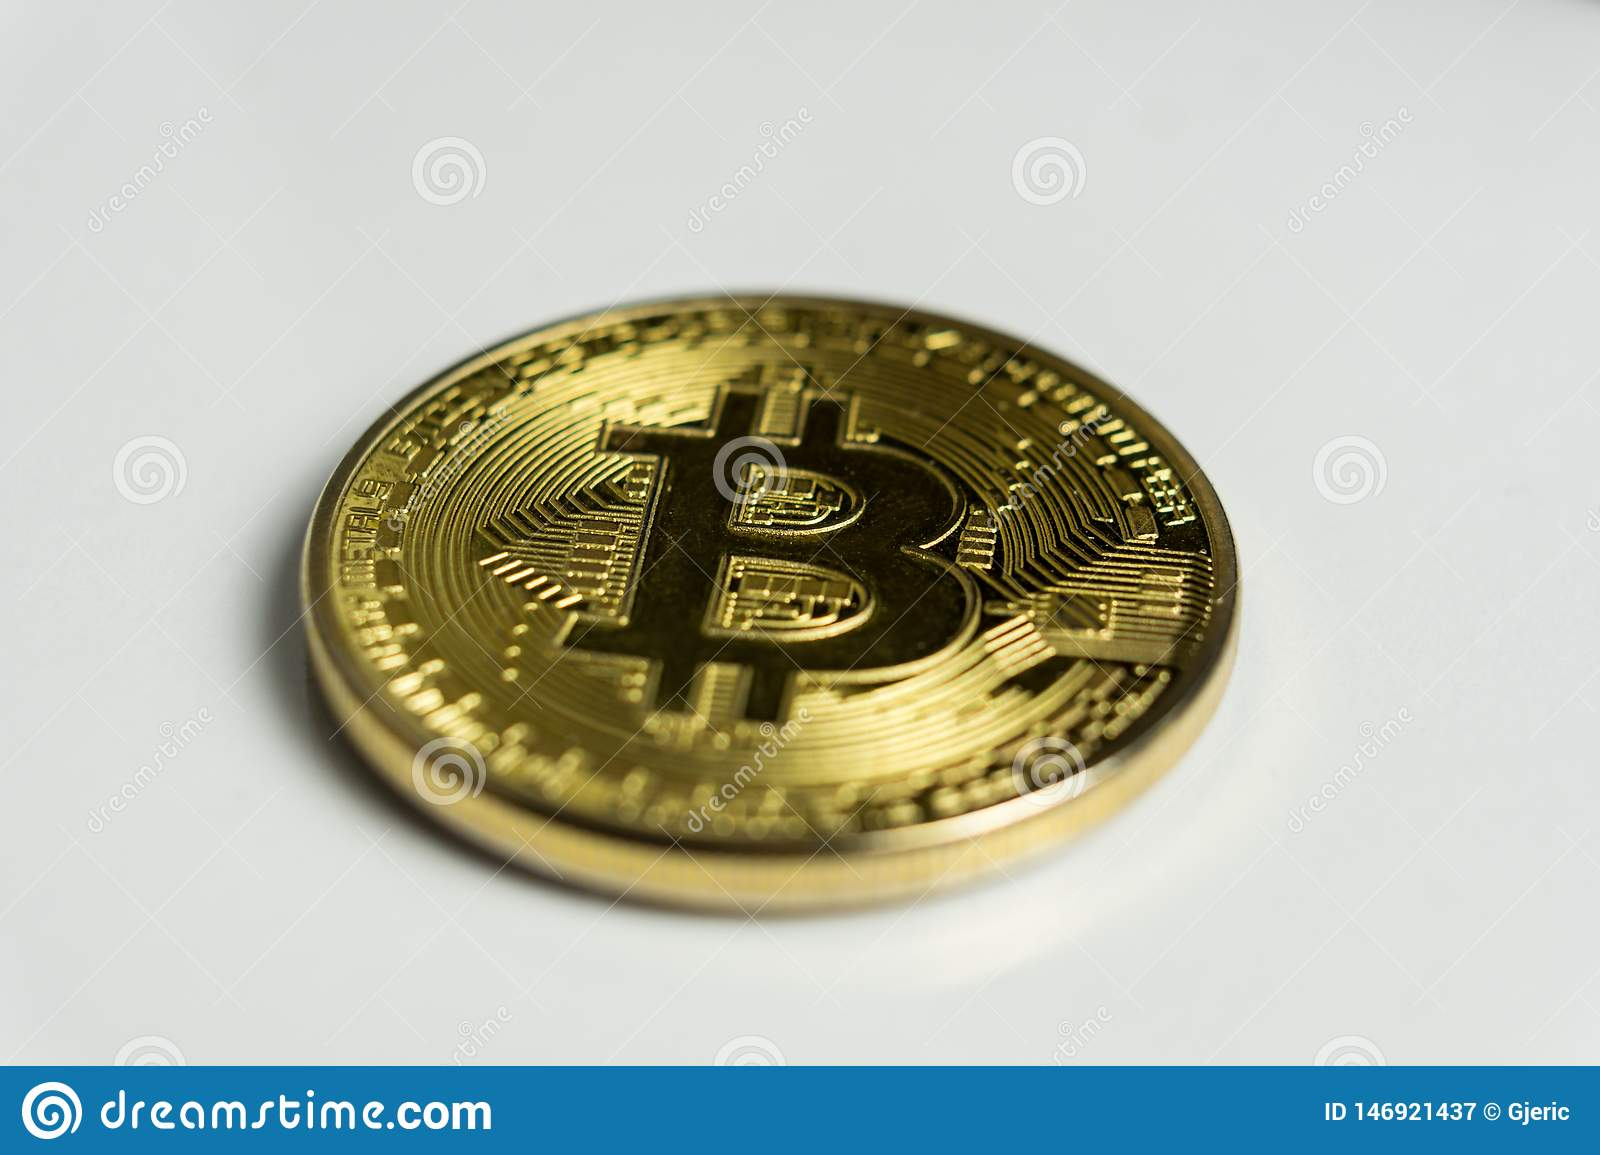 Face of the crypto currency golden bitcoin isolated on white background. The concept of virtual international currency